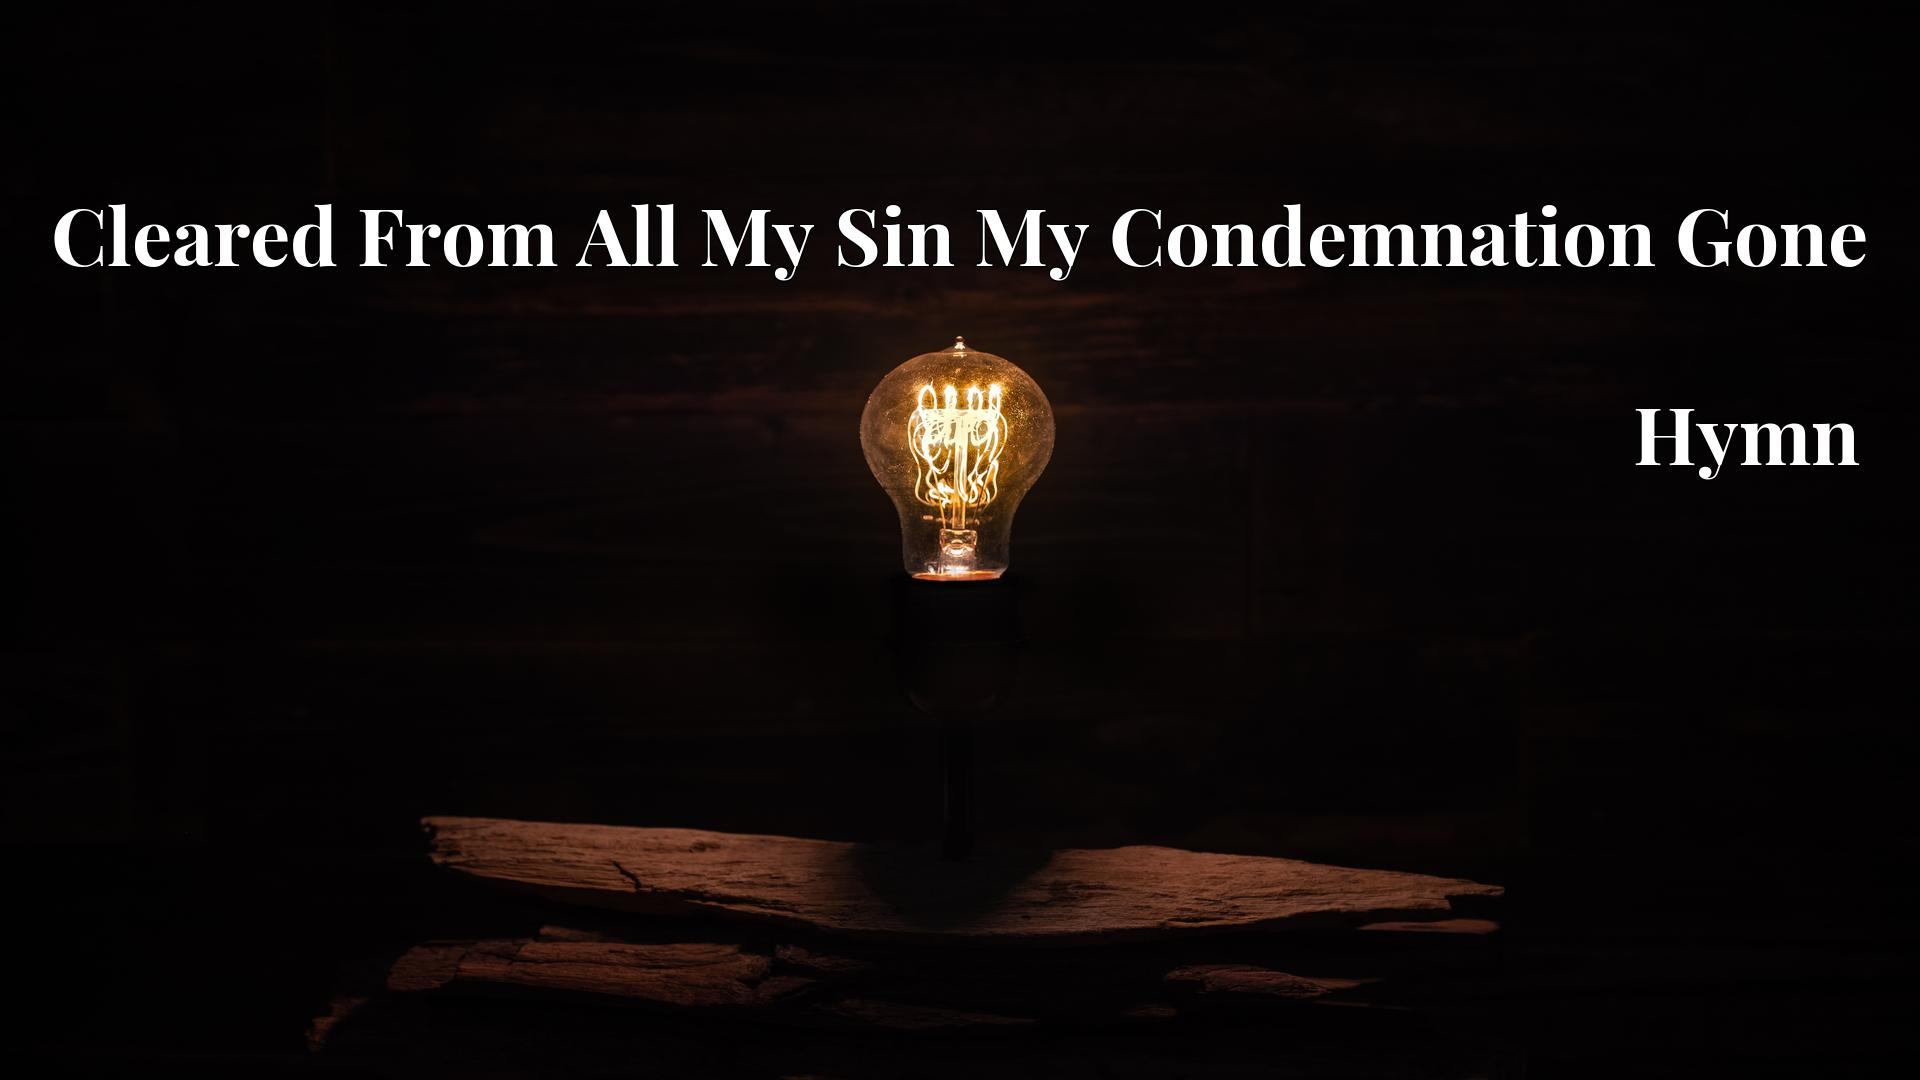 Cleared From All My Sin My Condemnation Gone - Hymn